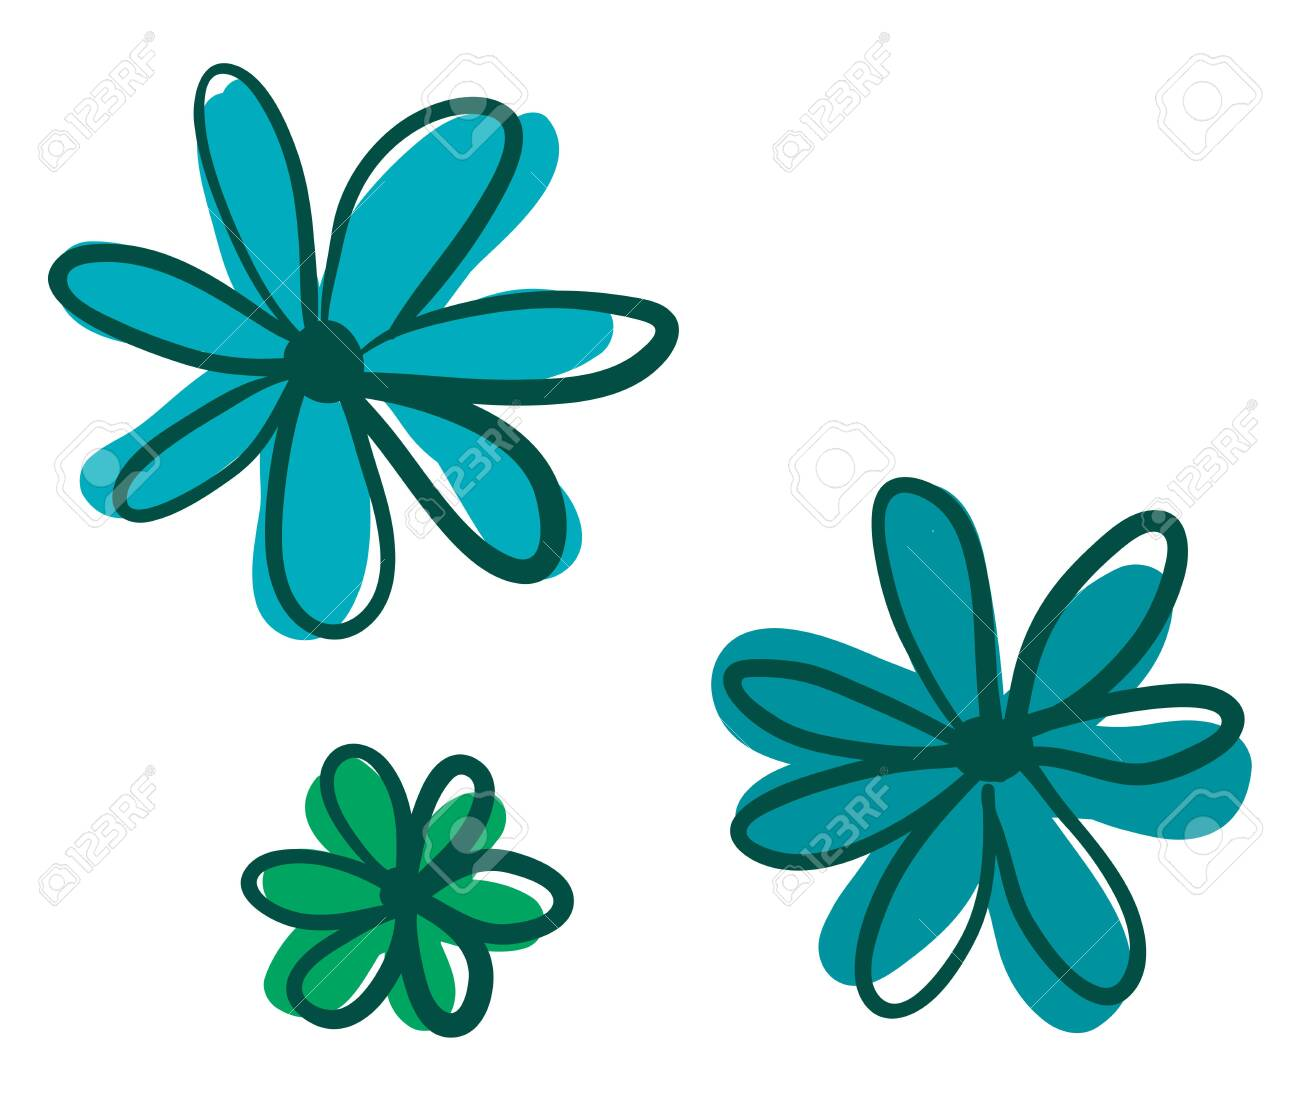 A Cartoon Including Three Simple Flowers Drawn In Green And Blue Royalty Free Cliparts Vectors And Stock Illustration Image 120989190